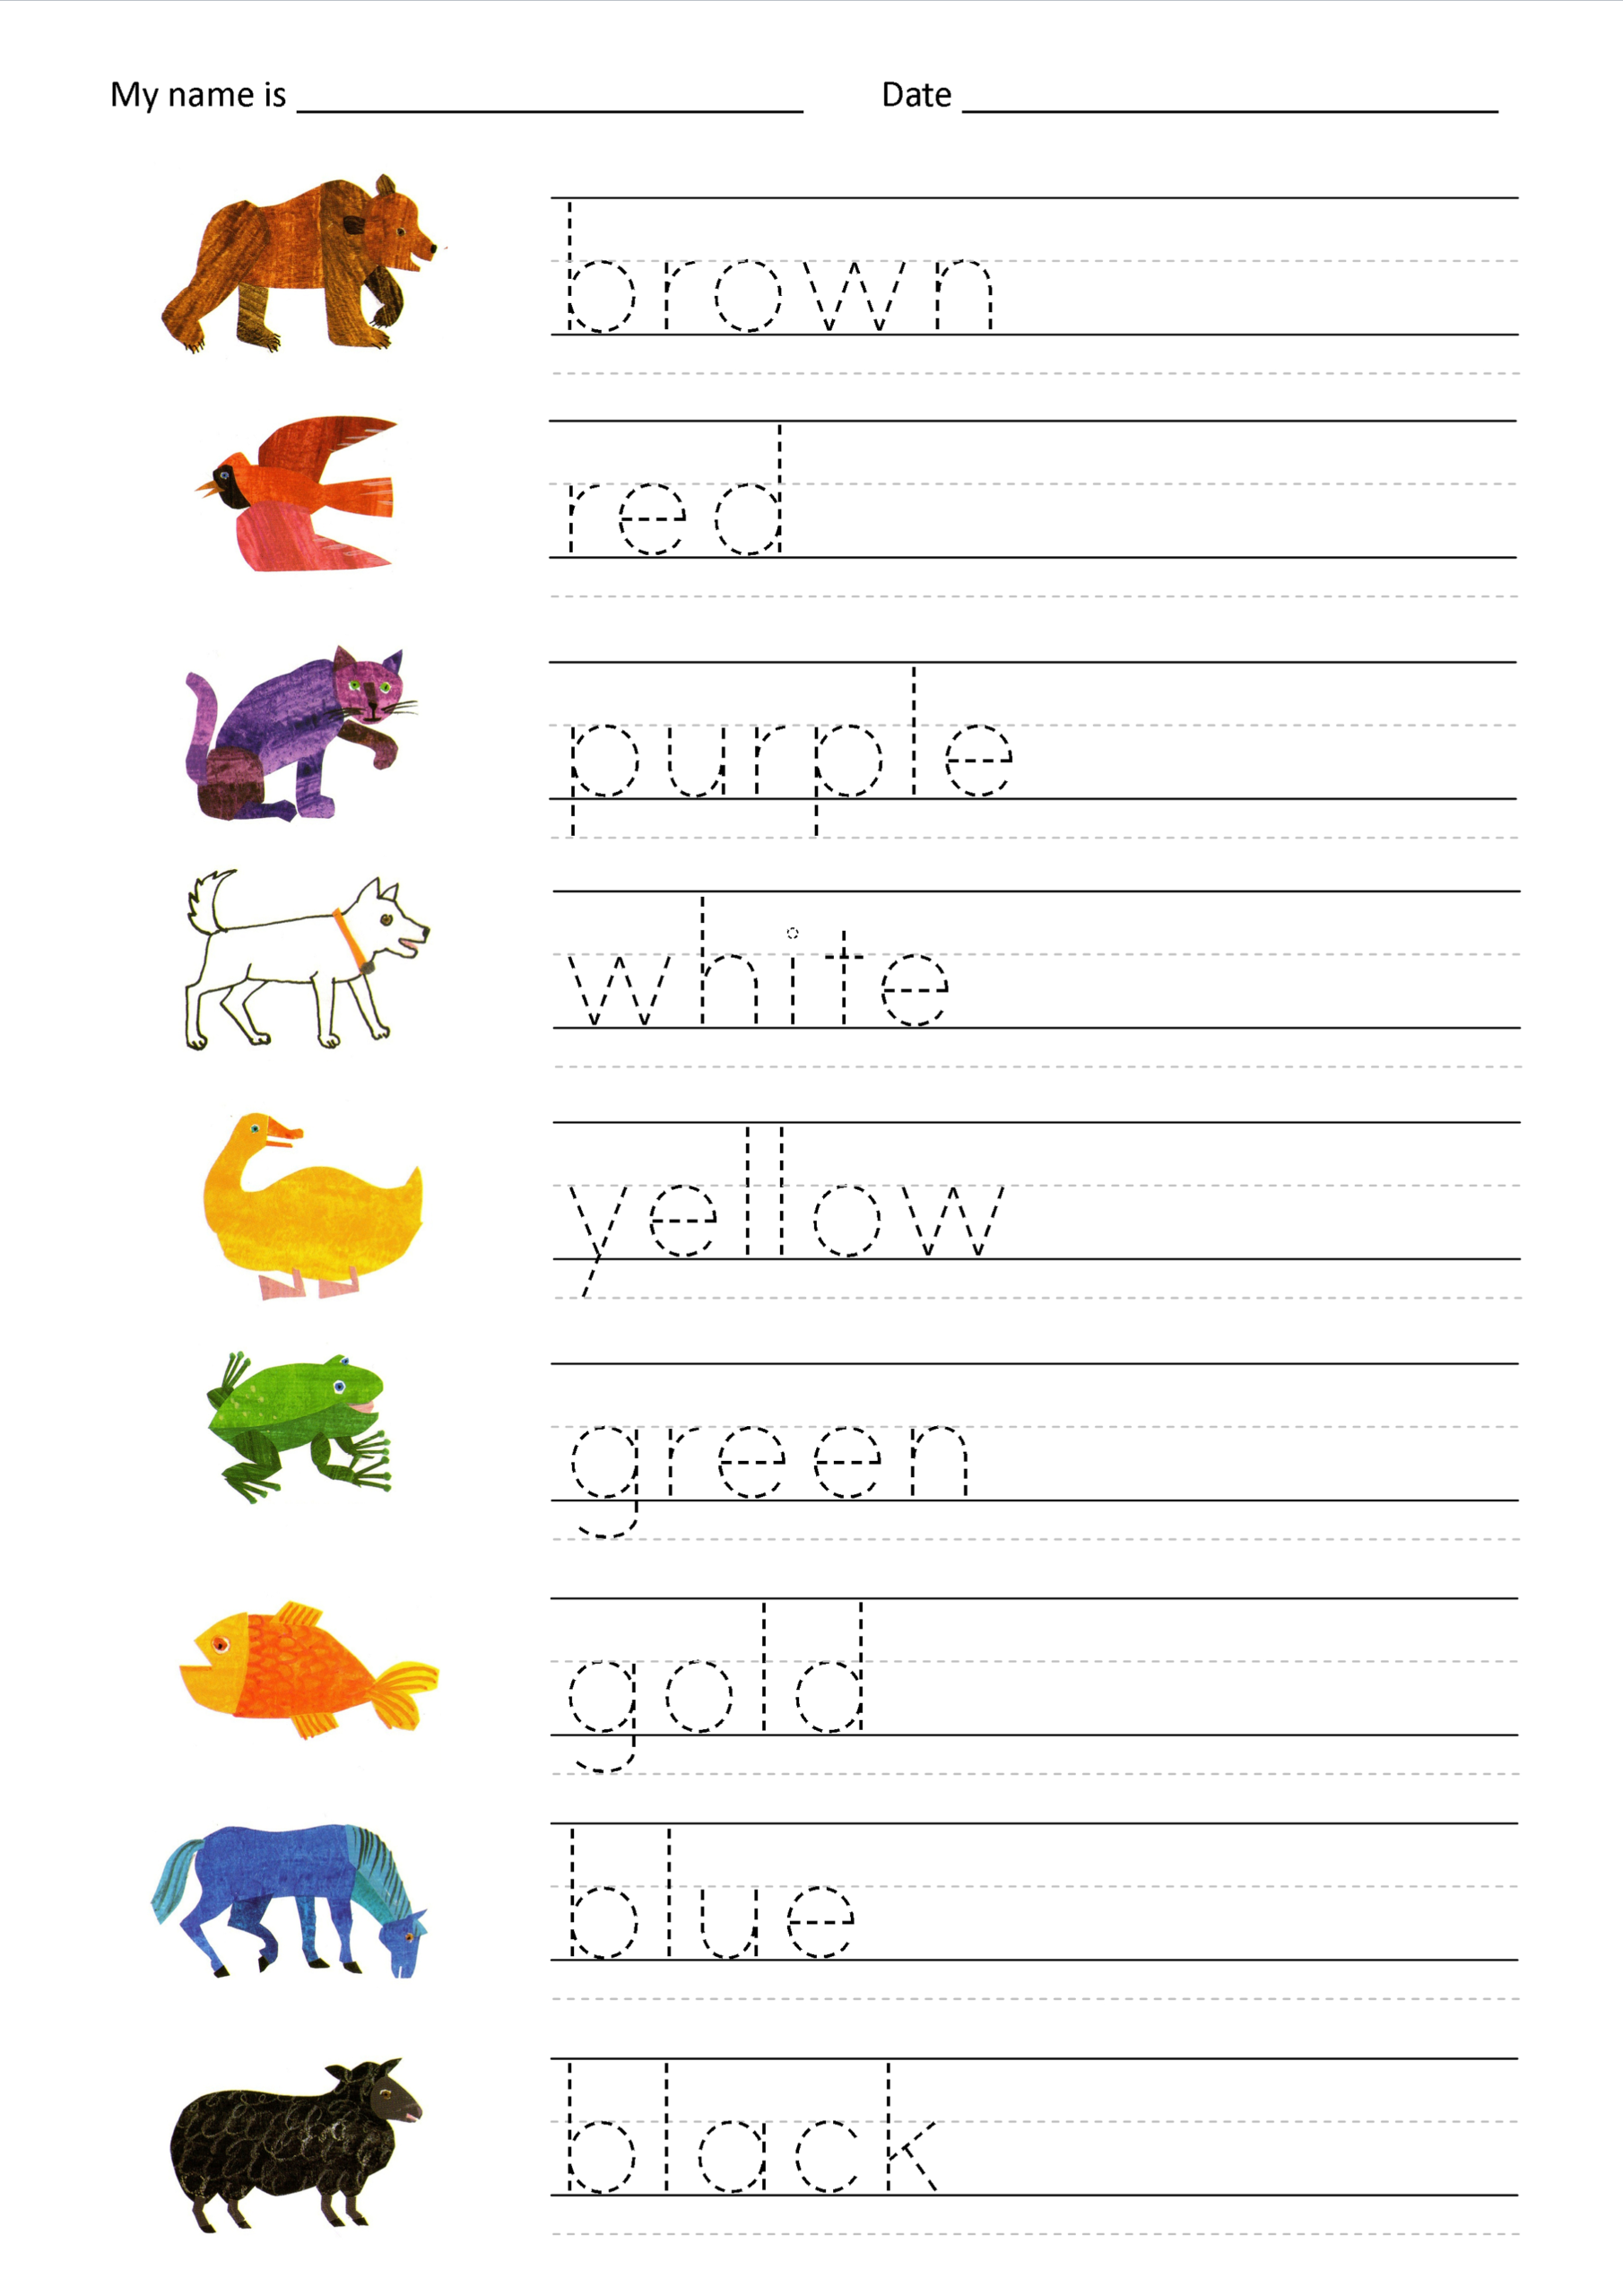 Free Name Tracing Worksheets Pictures - Activities Free intended for Name Tracing Colored